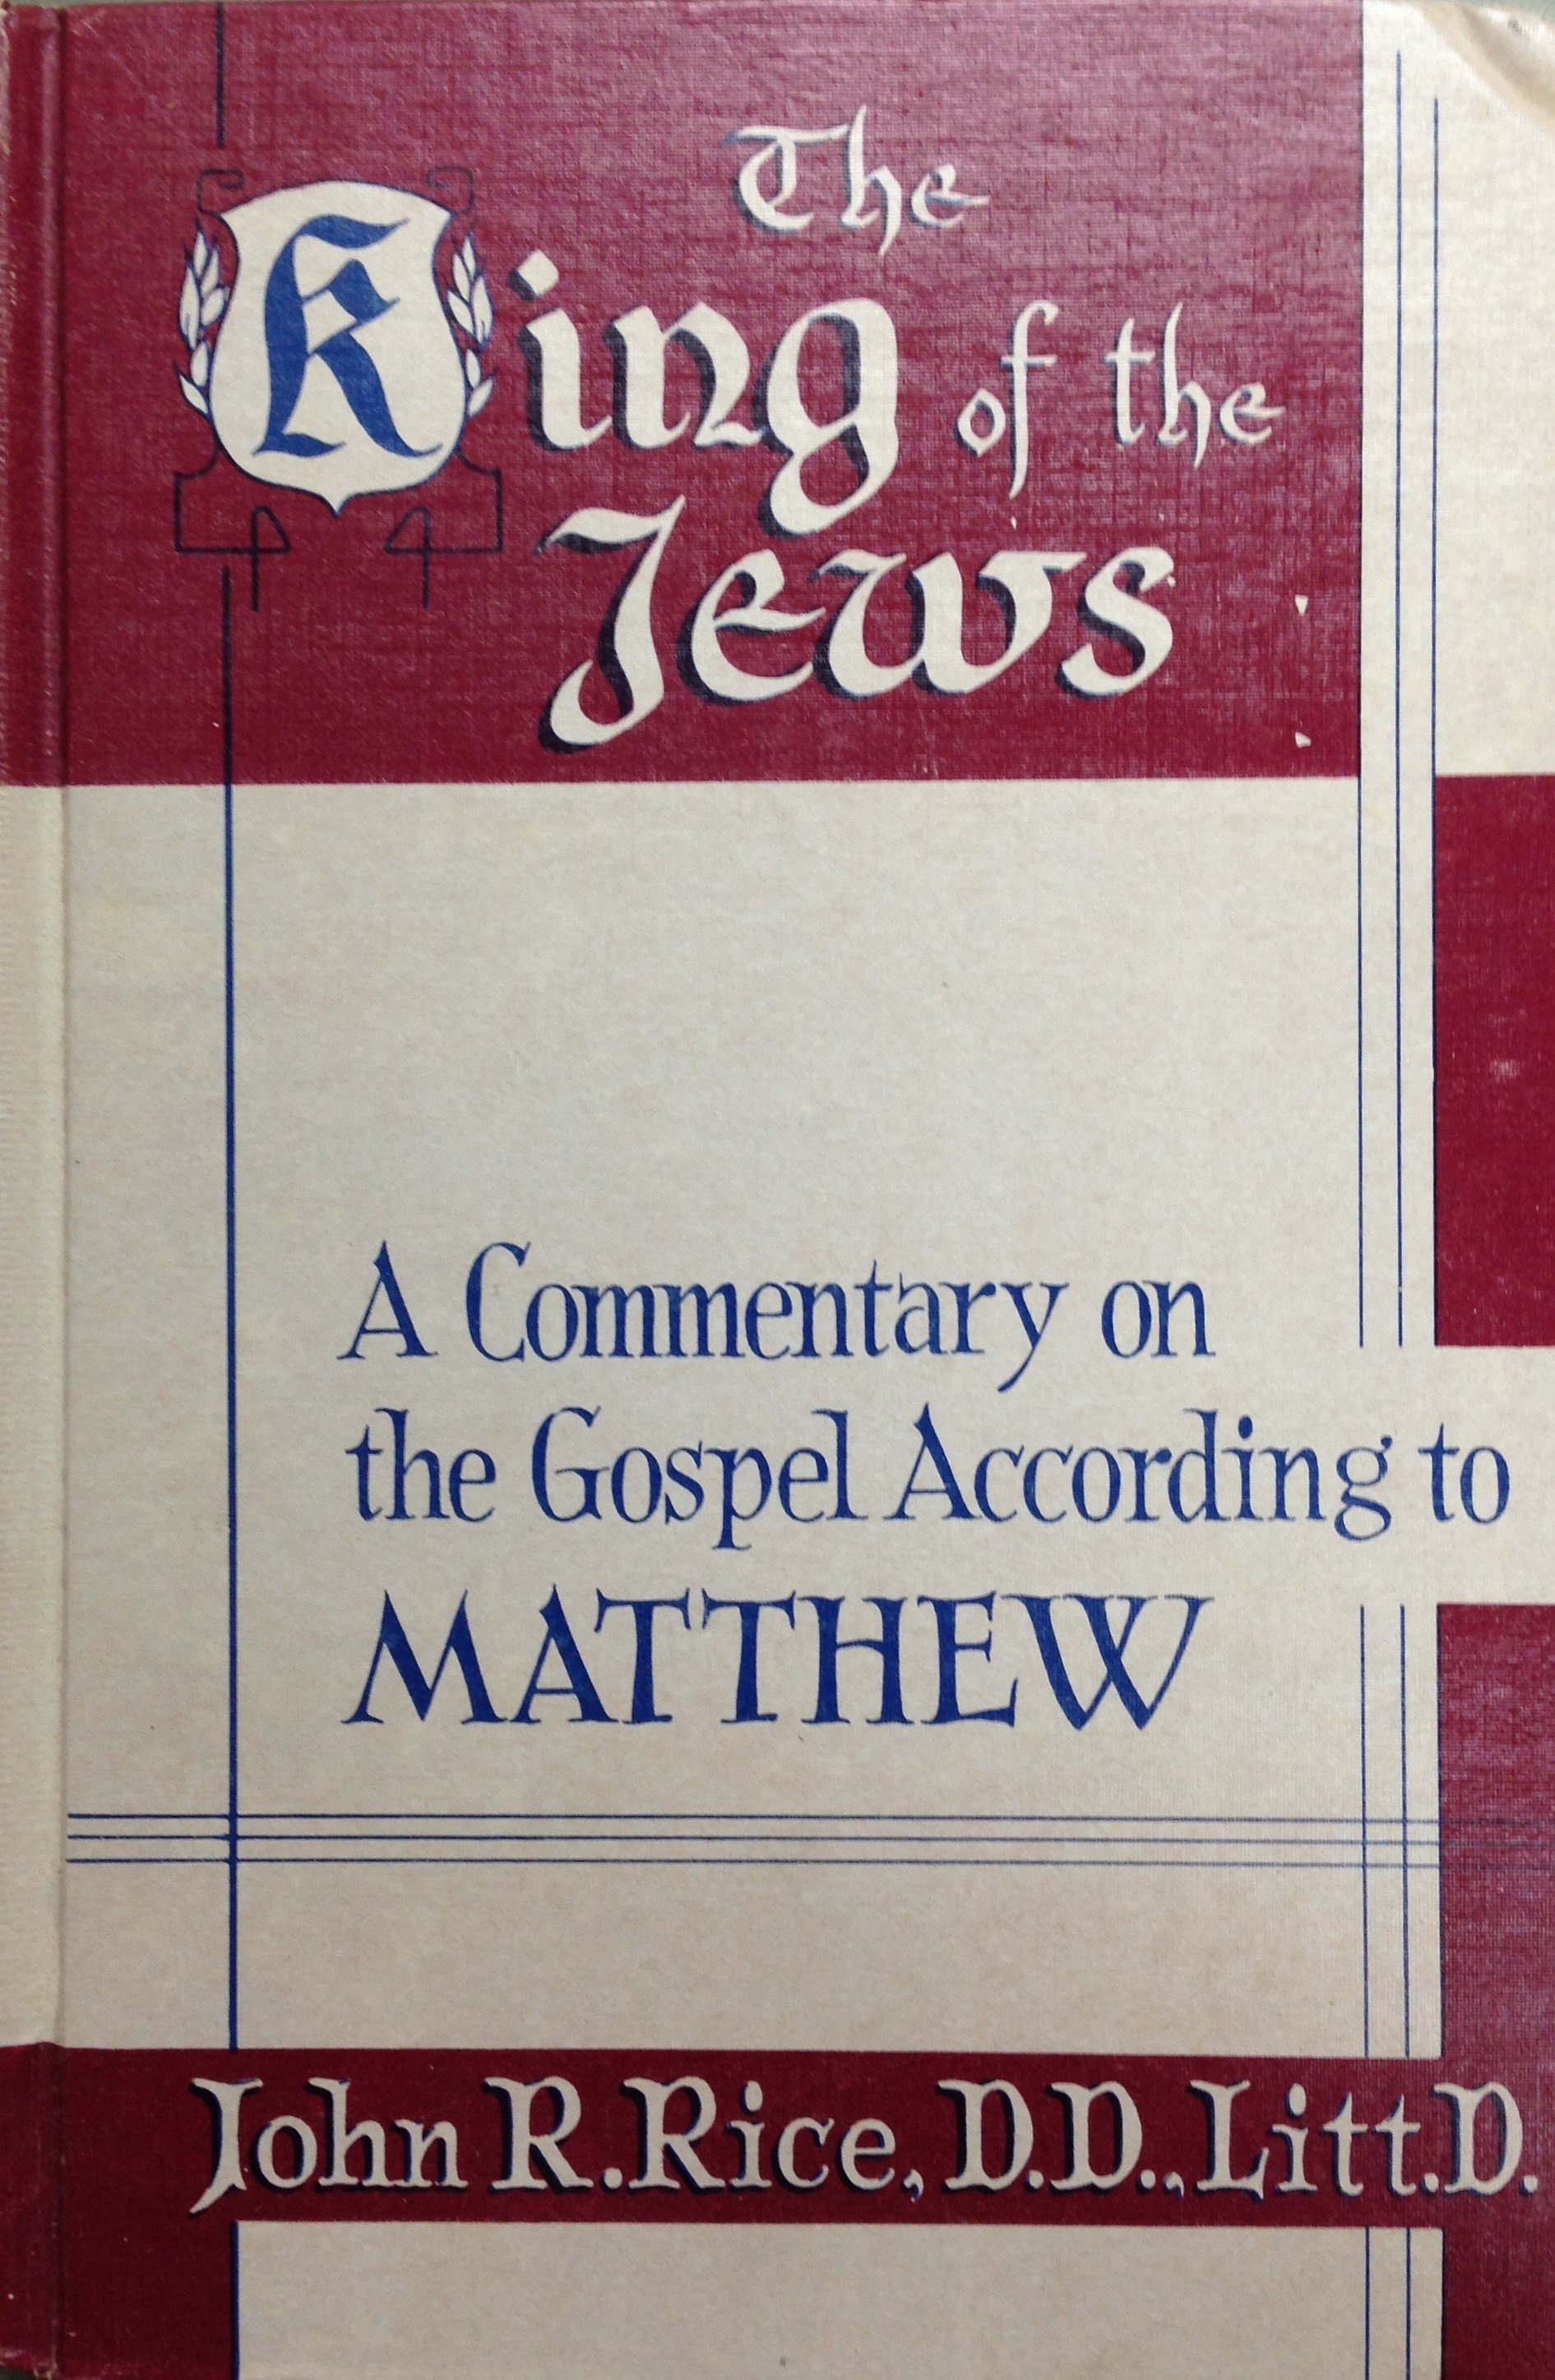 The King of the Jews:  A Commentary on the Gospel According to Matthew by John R. Rice  (USED) 00091